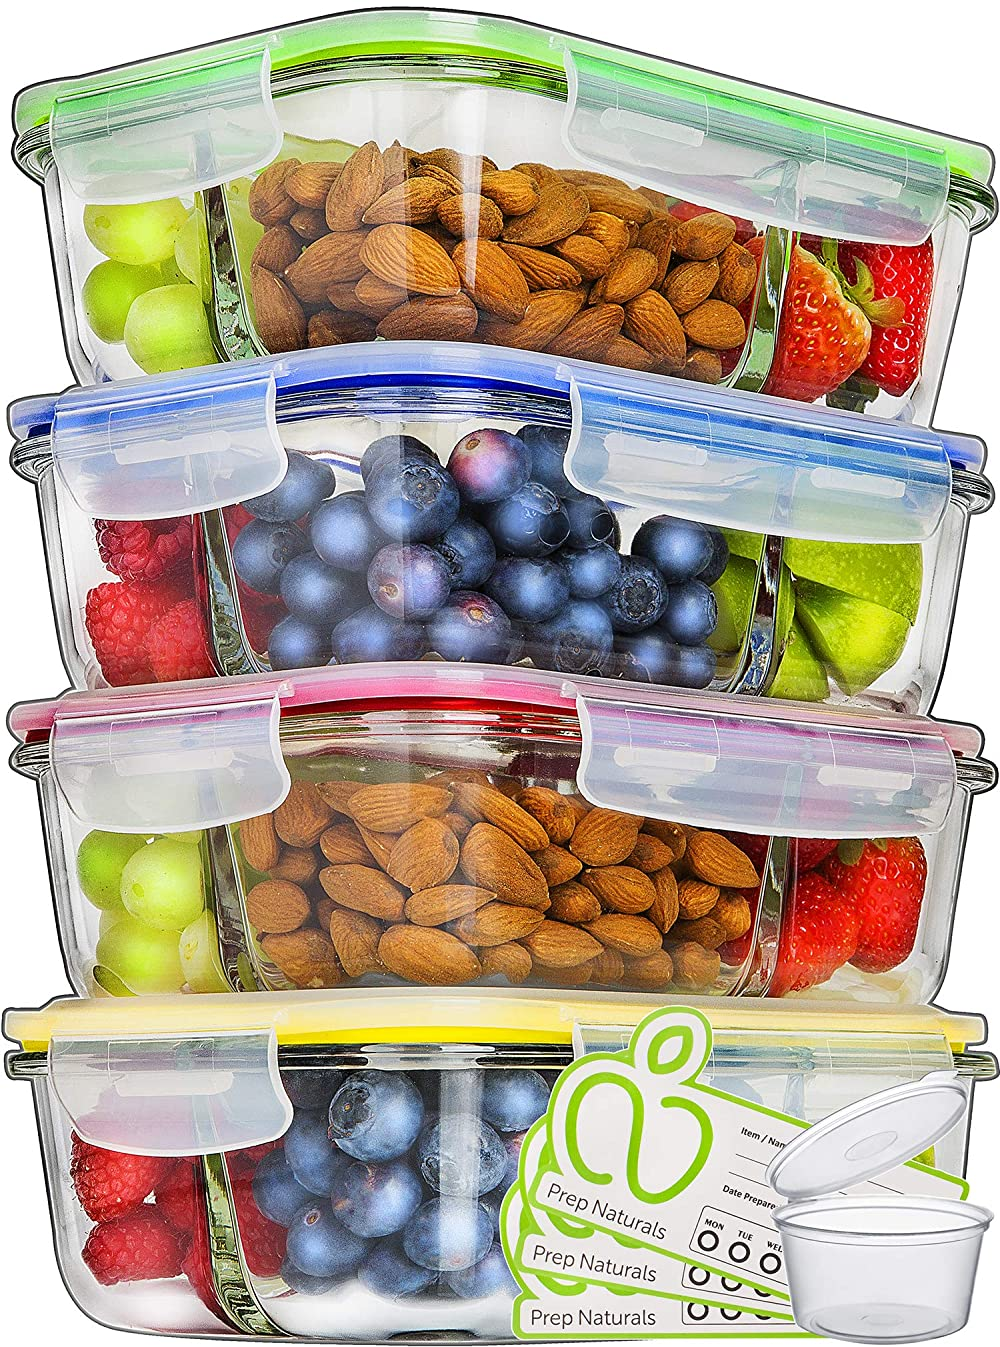 Glass Meal Prep Containers 3 Compartment - Food Containers Meal Prep Food Prep Containers Lunch Containers Glass Containers with lids Freezer Containers Bento Box Containers Bento